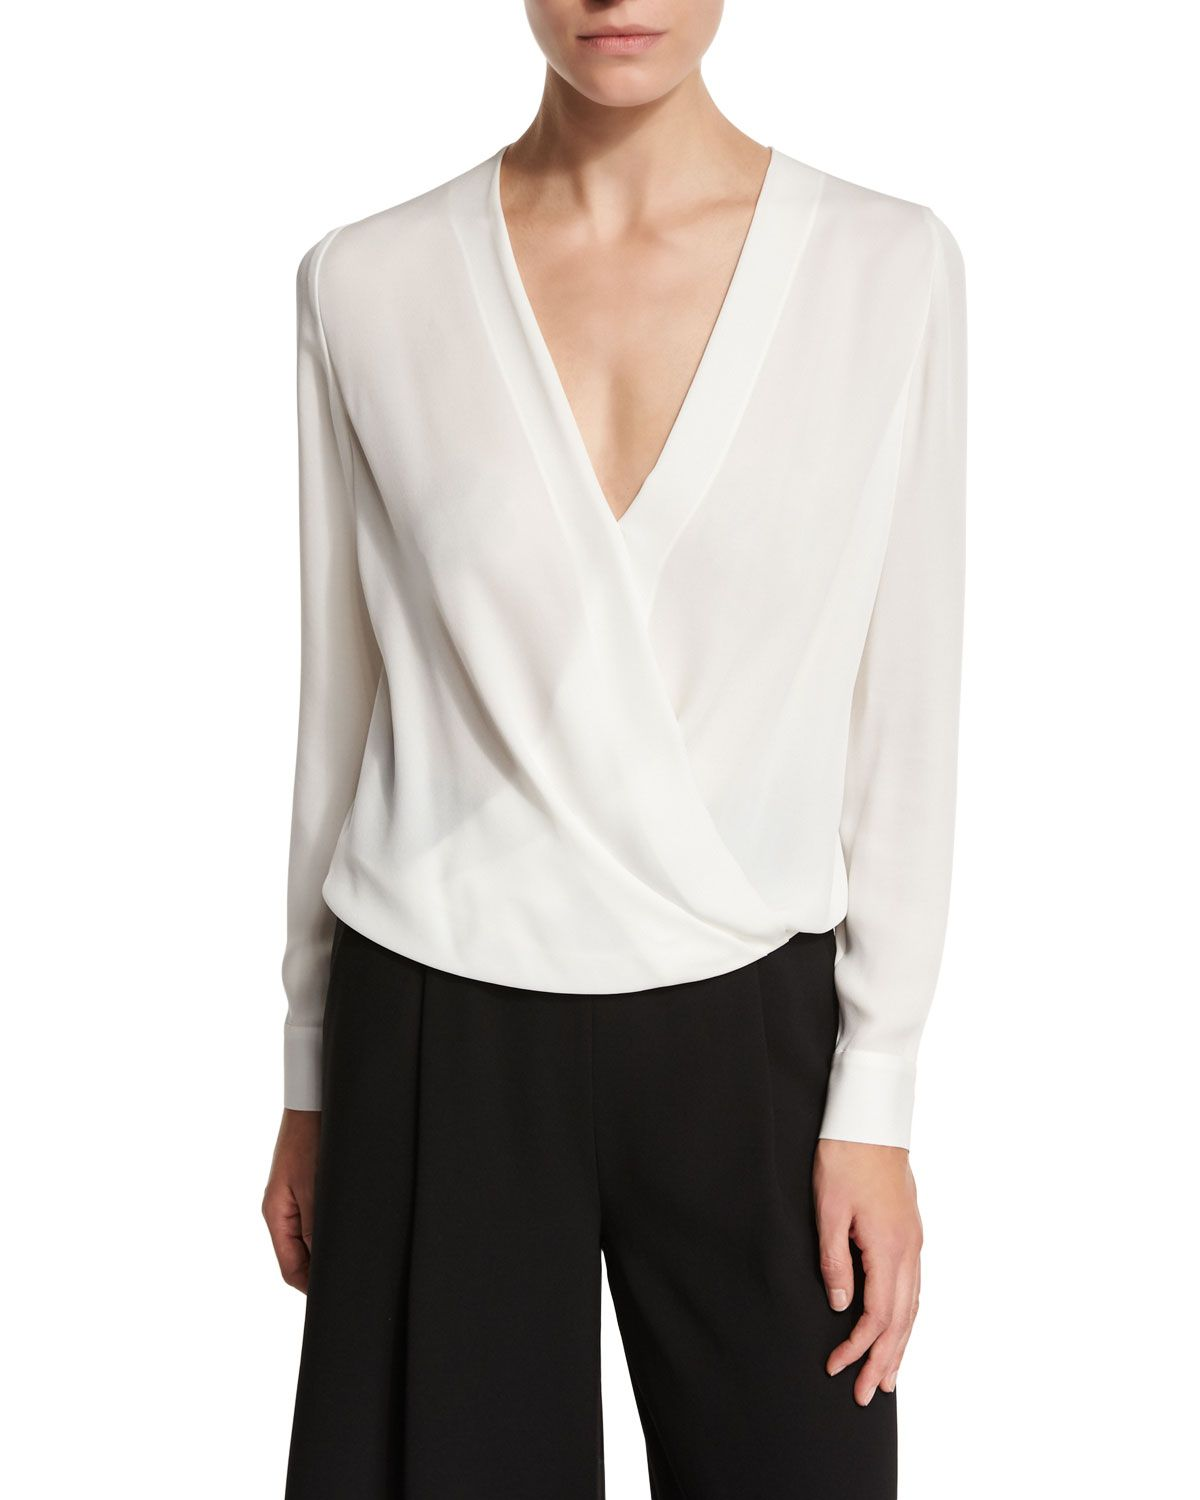 White Wrap Blouse Long Sleeve Anlis